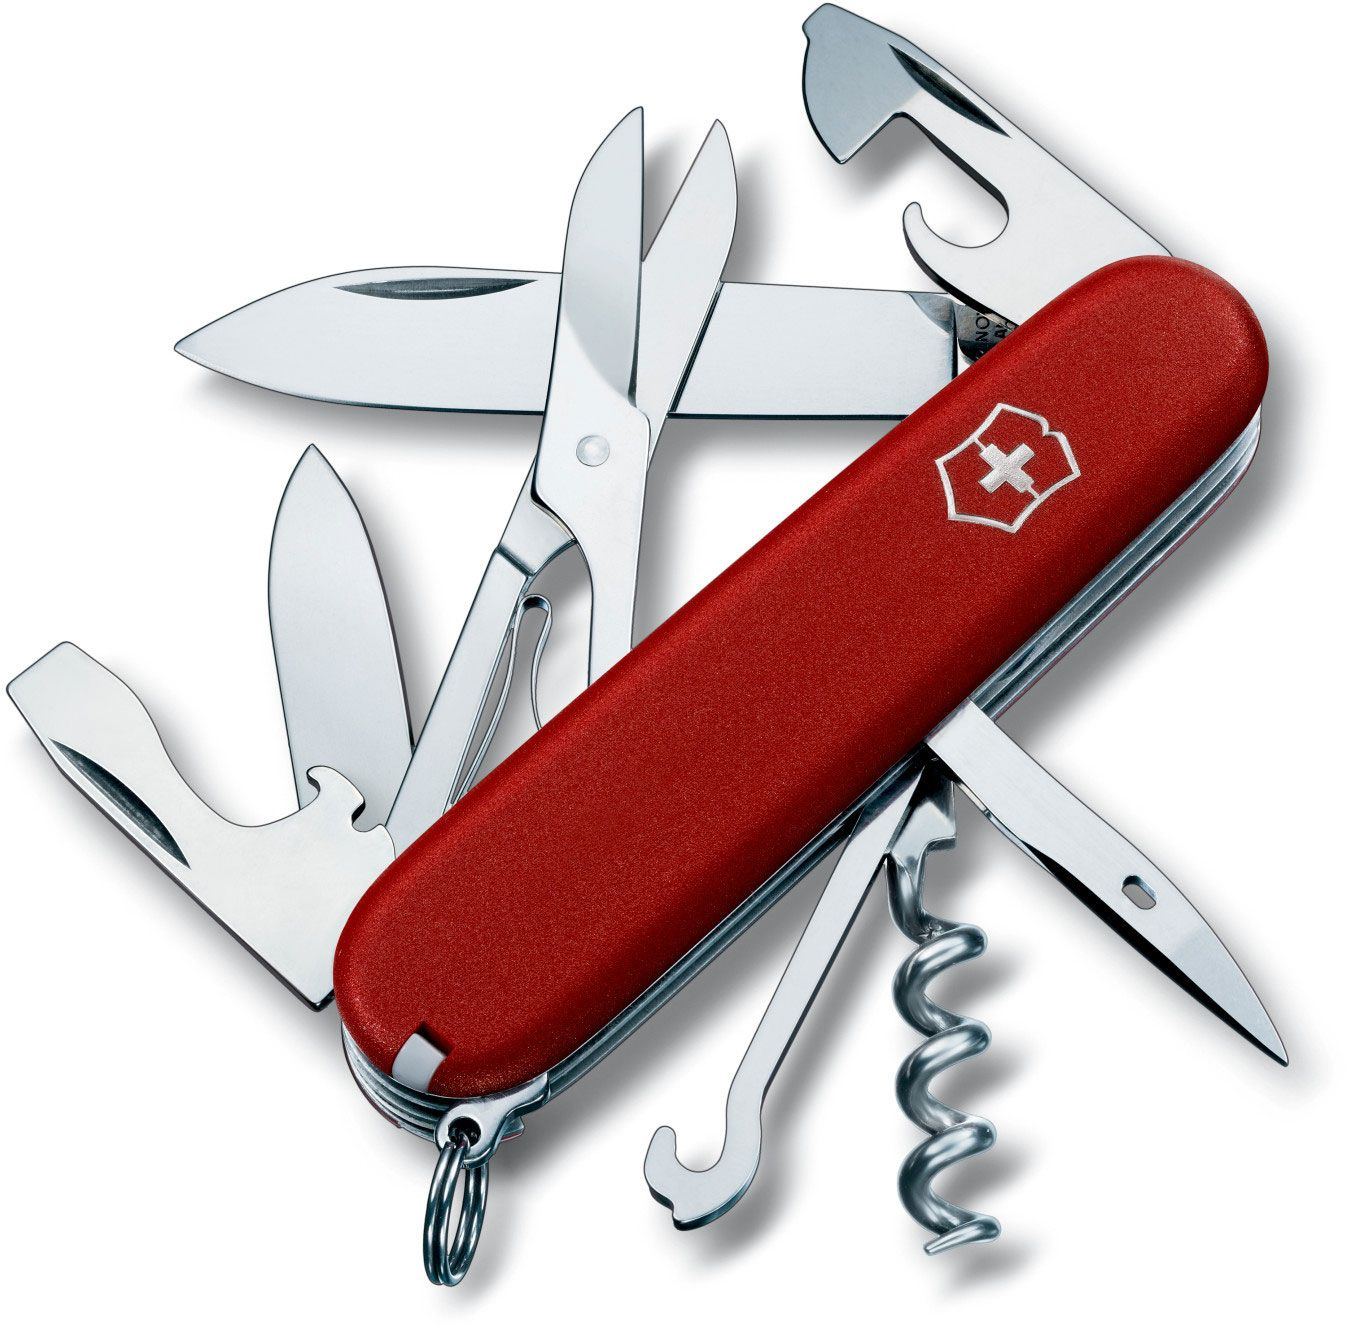 Victorinox Swiss Army Climber Multi-Tool, 3-1/2 inch Red Handles (Old Sku 53381)